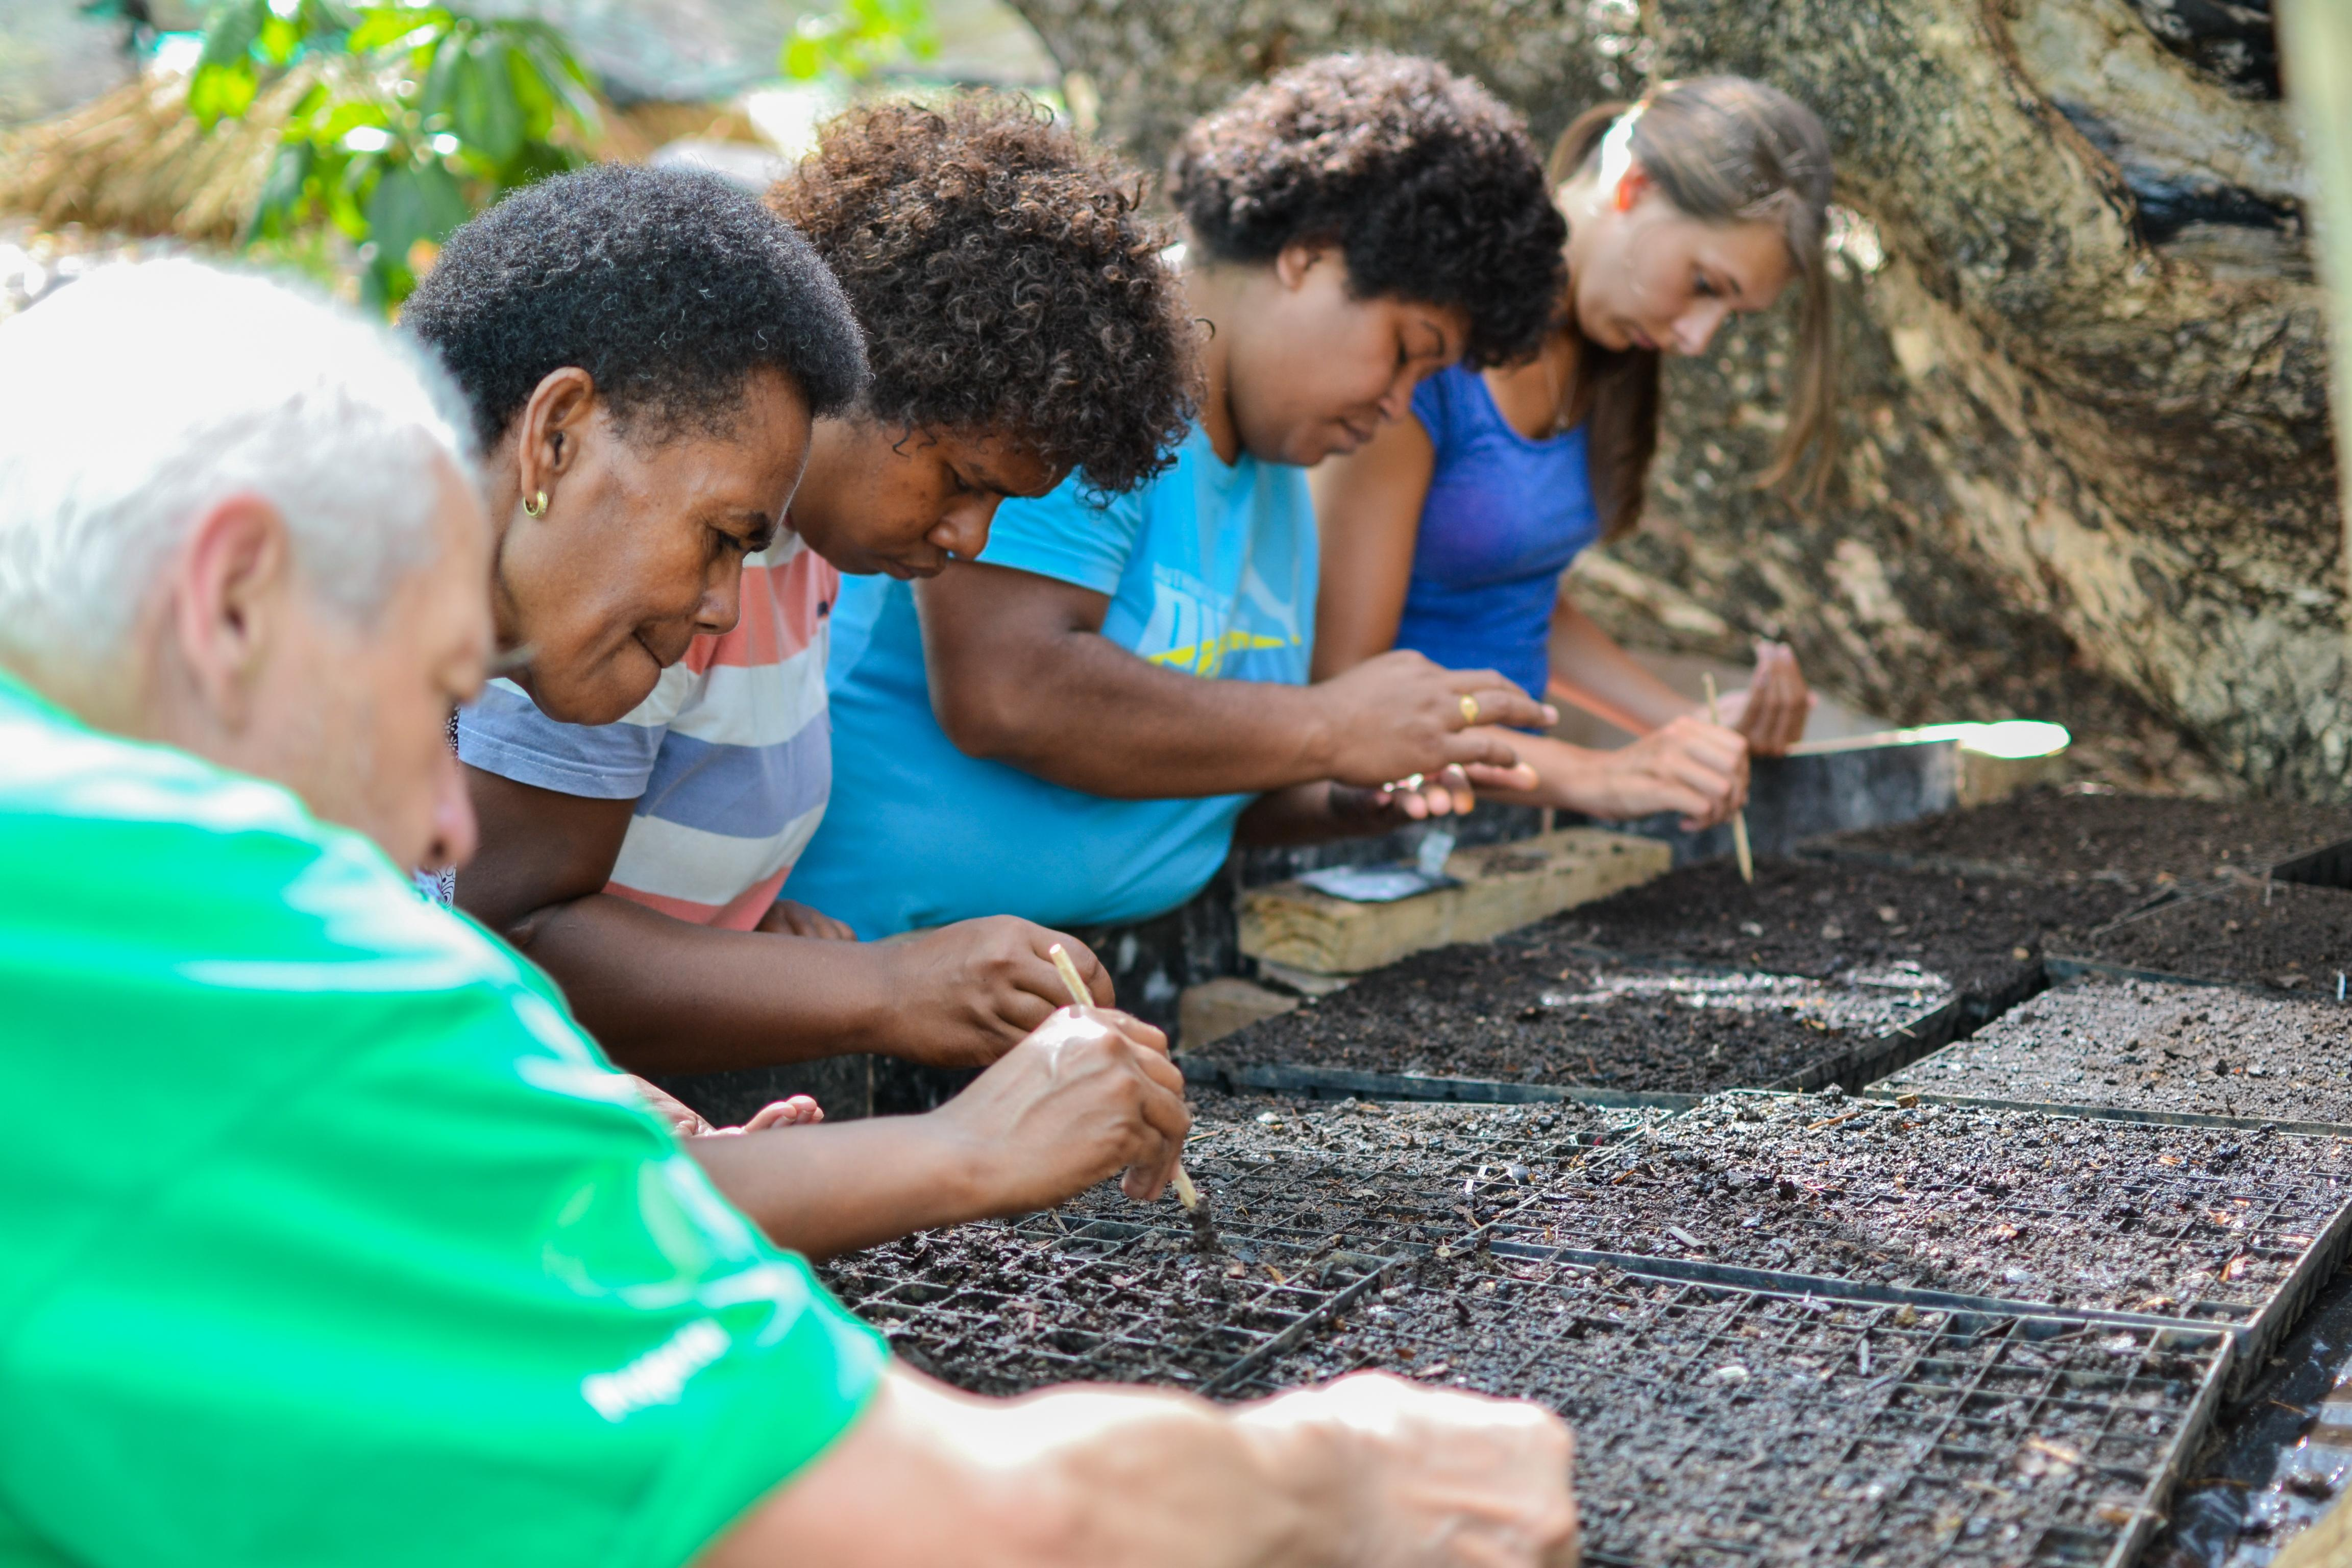 Projects Abroad nutrition interns plant seeds with local residents during their nutritional internship in Fiji.